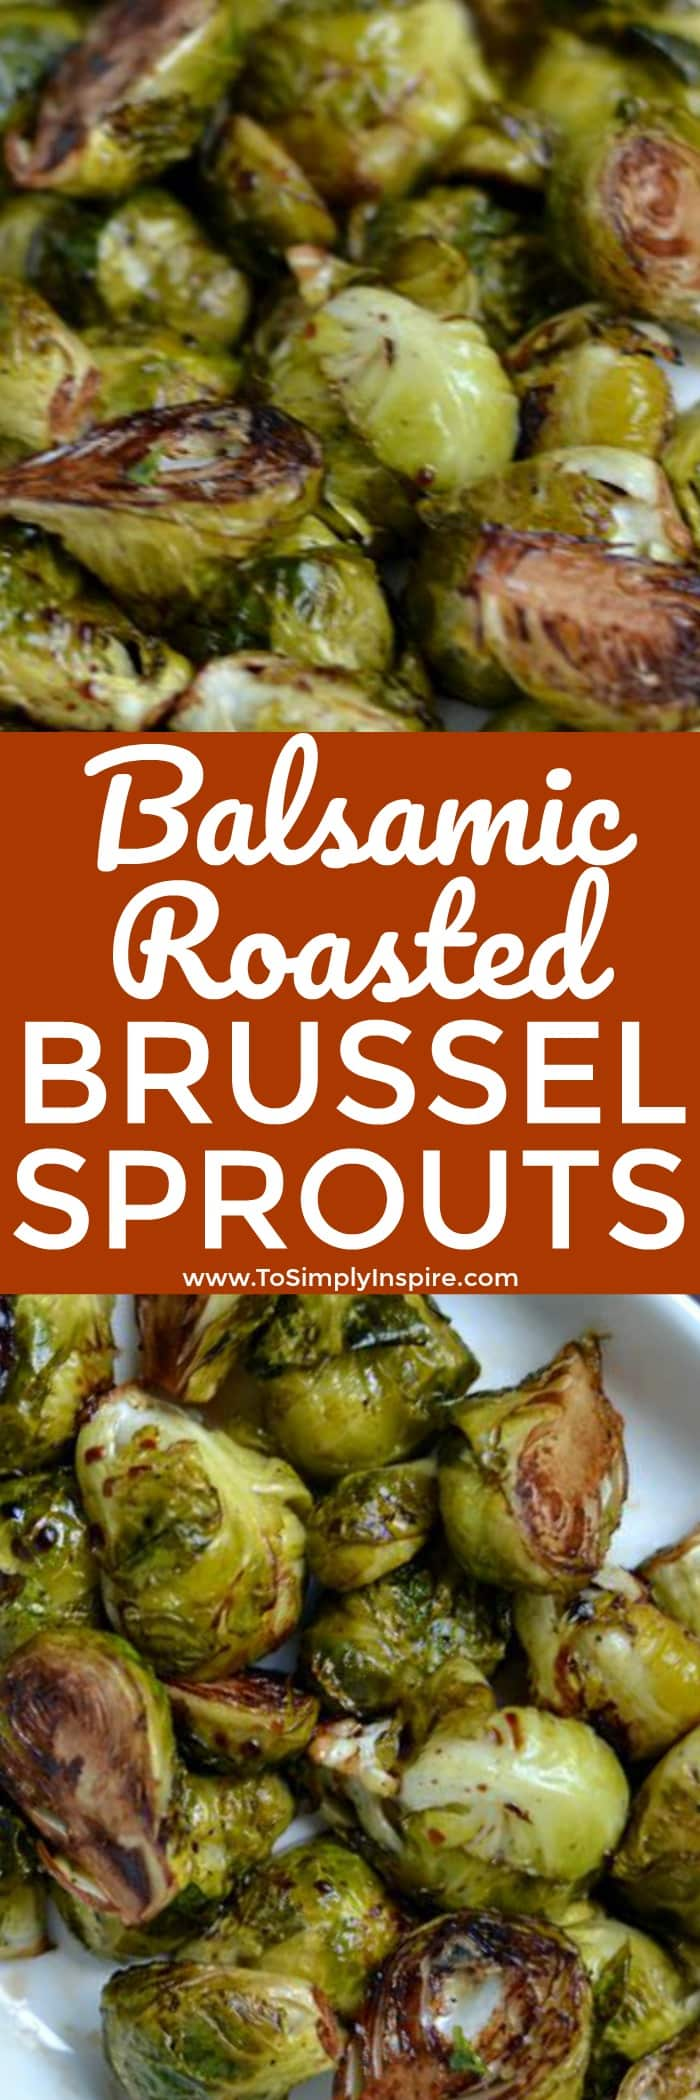 These Balsamic Roasted Brussel Sprouts will change the way you think about this veggie.They are loaded with sweet nutty flavor for a wonderful, extremely healthy side dish!